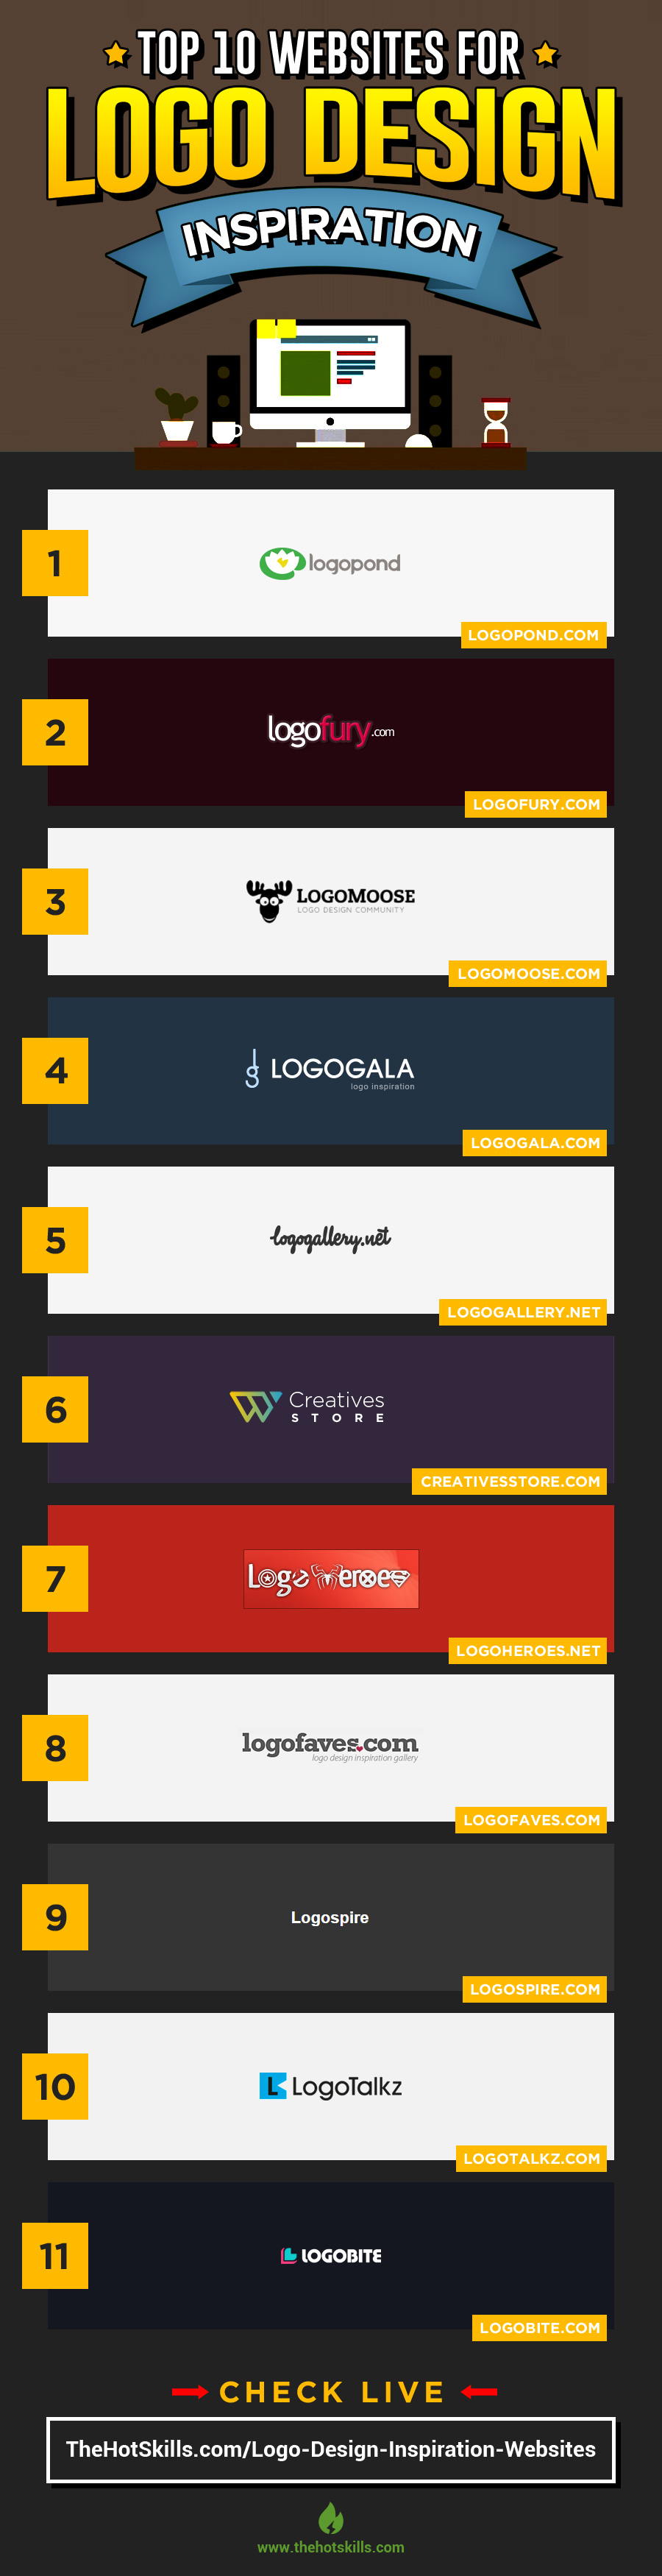 logo design inspiration sites & gallery